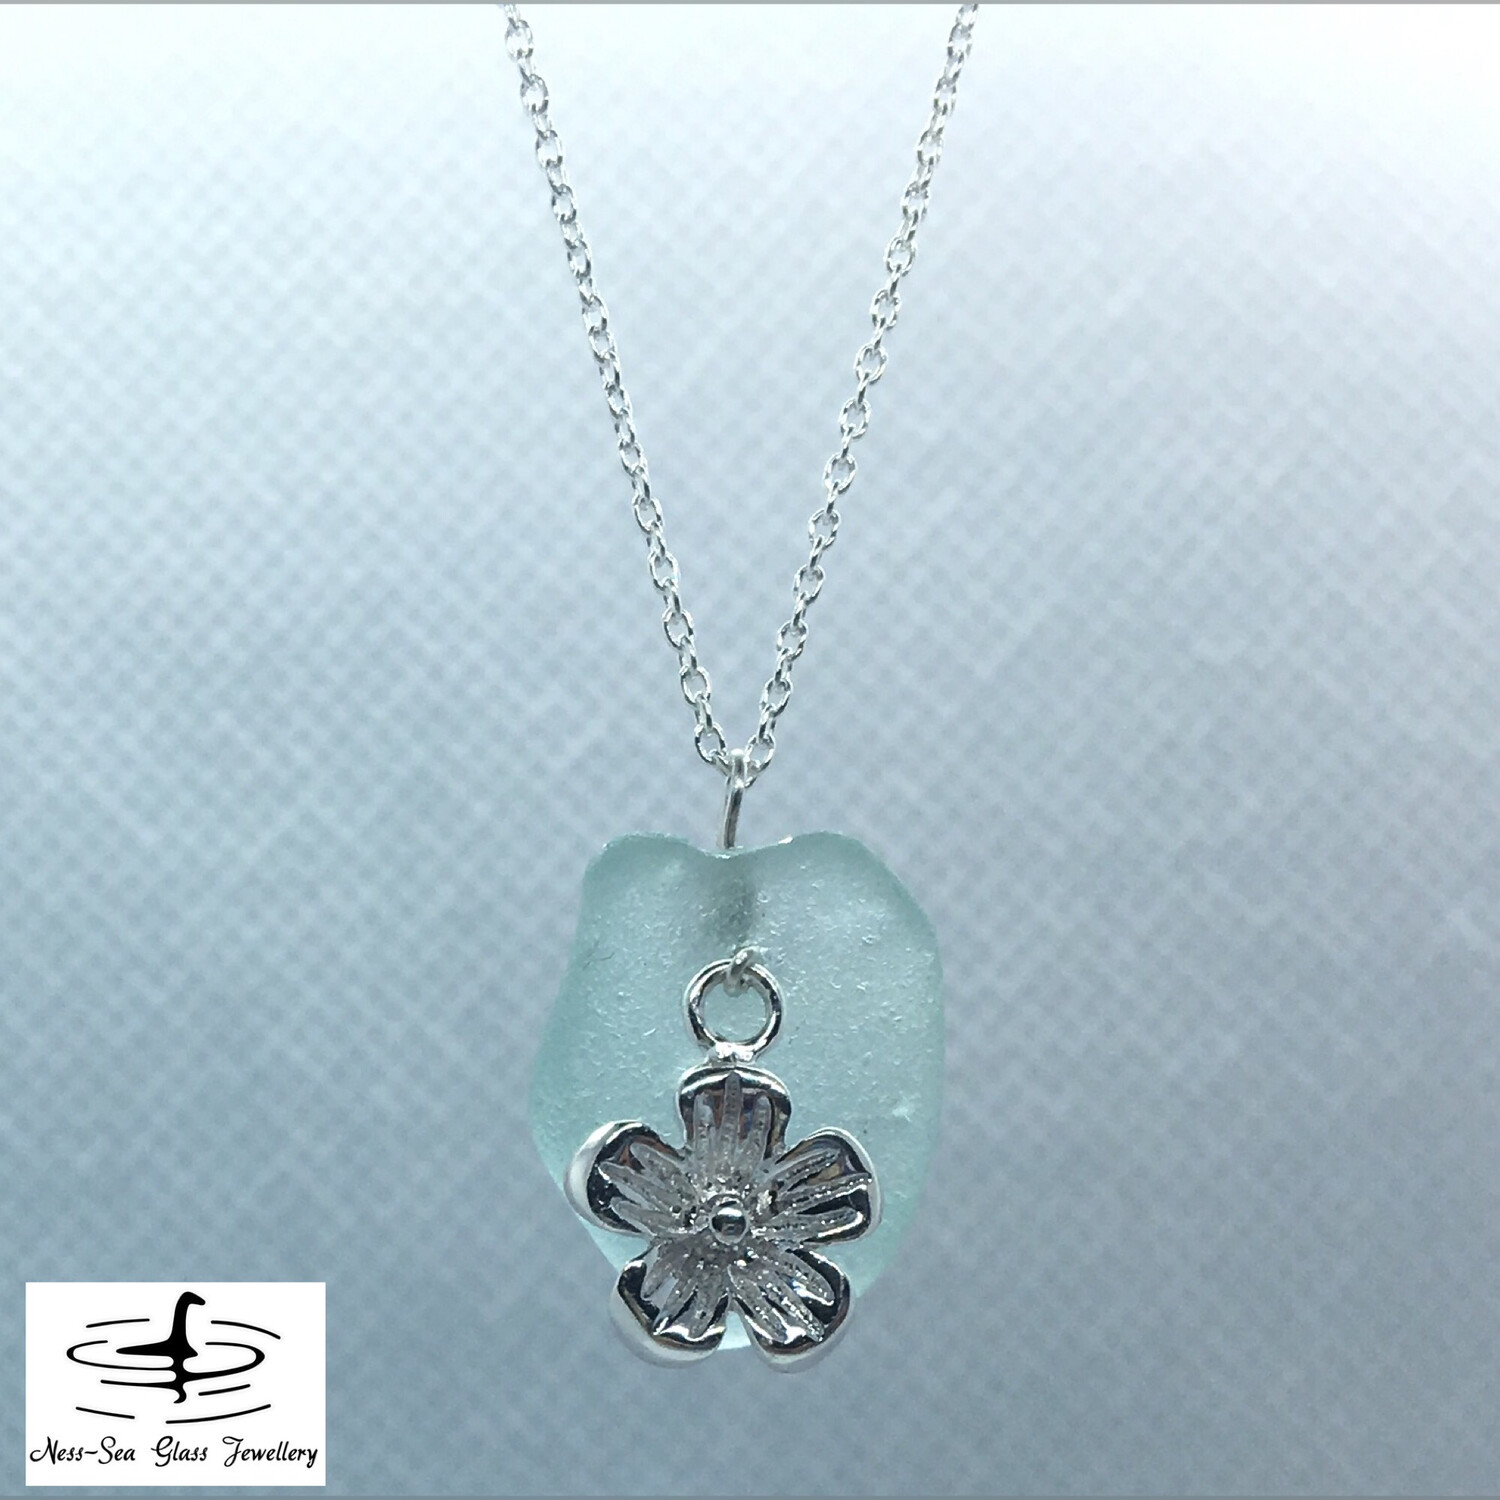 Blue Loch Ness Sea Glass Necklace with Sterling Silver Blossom Charm and Fine Sterling Silver Chain